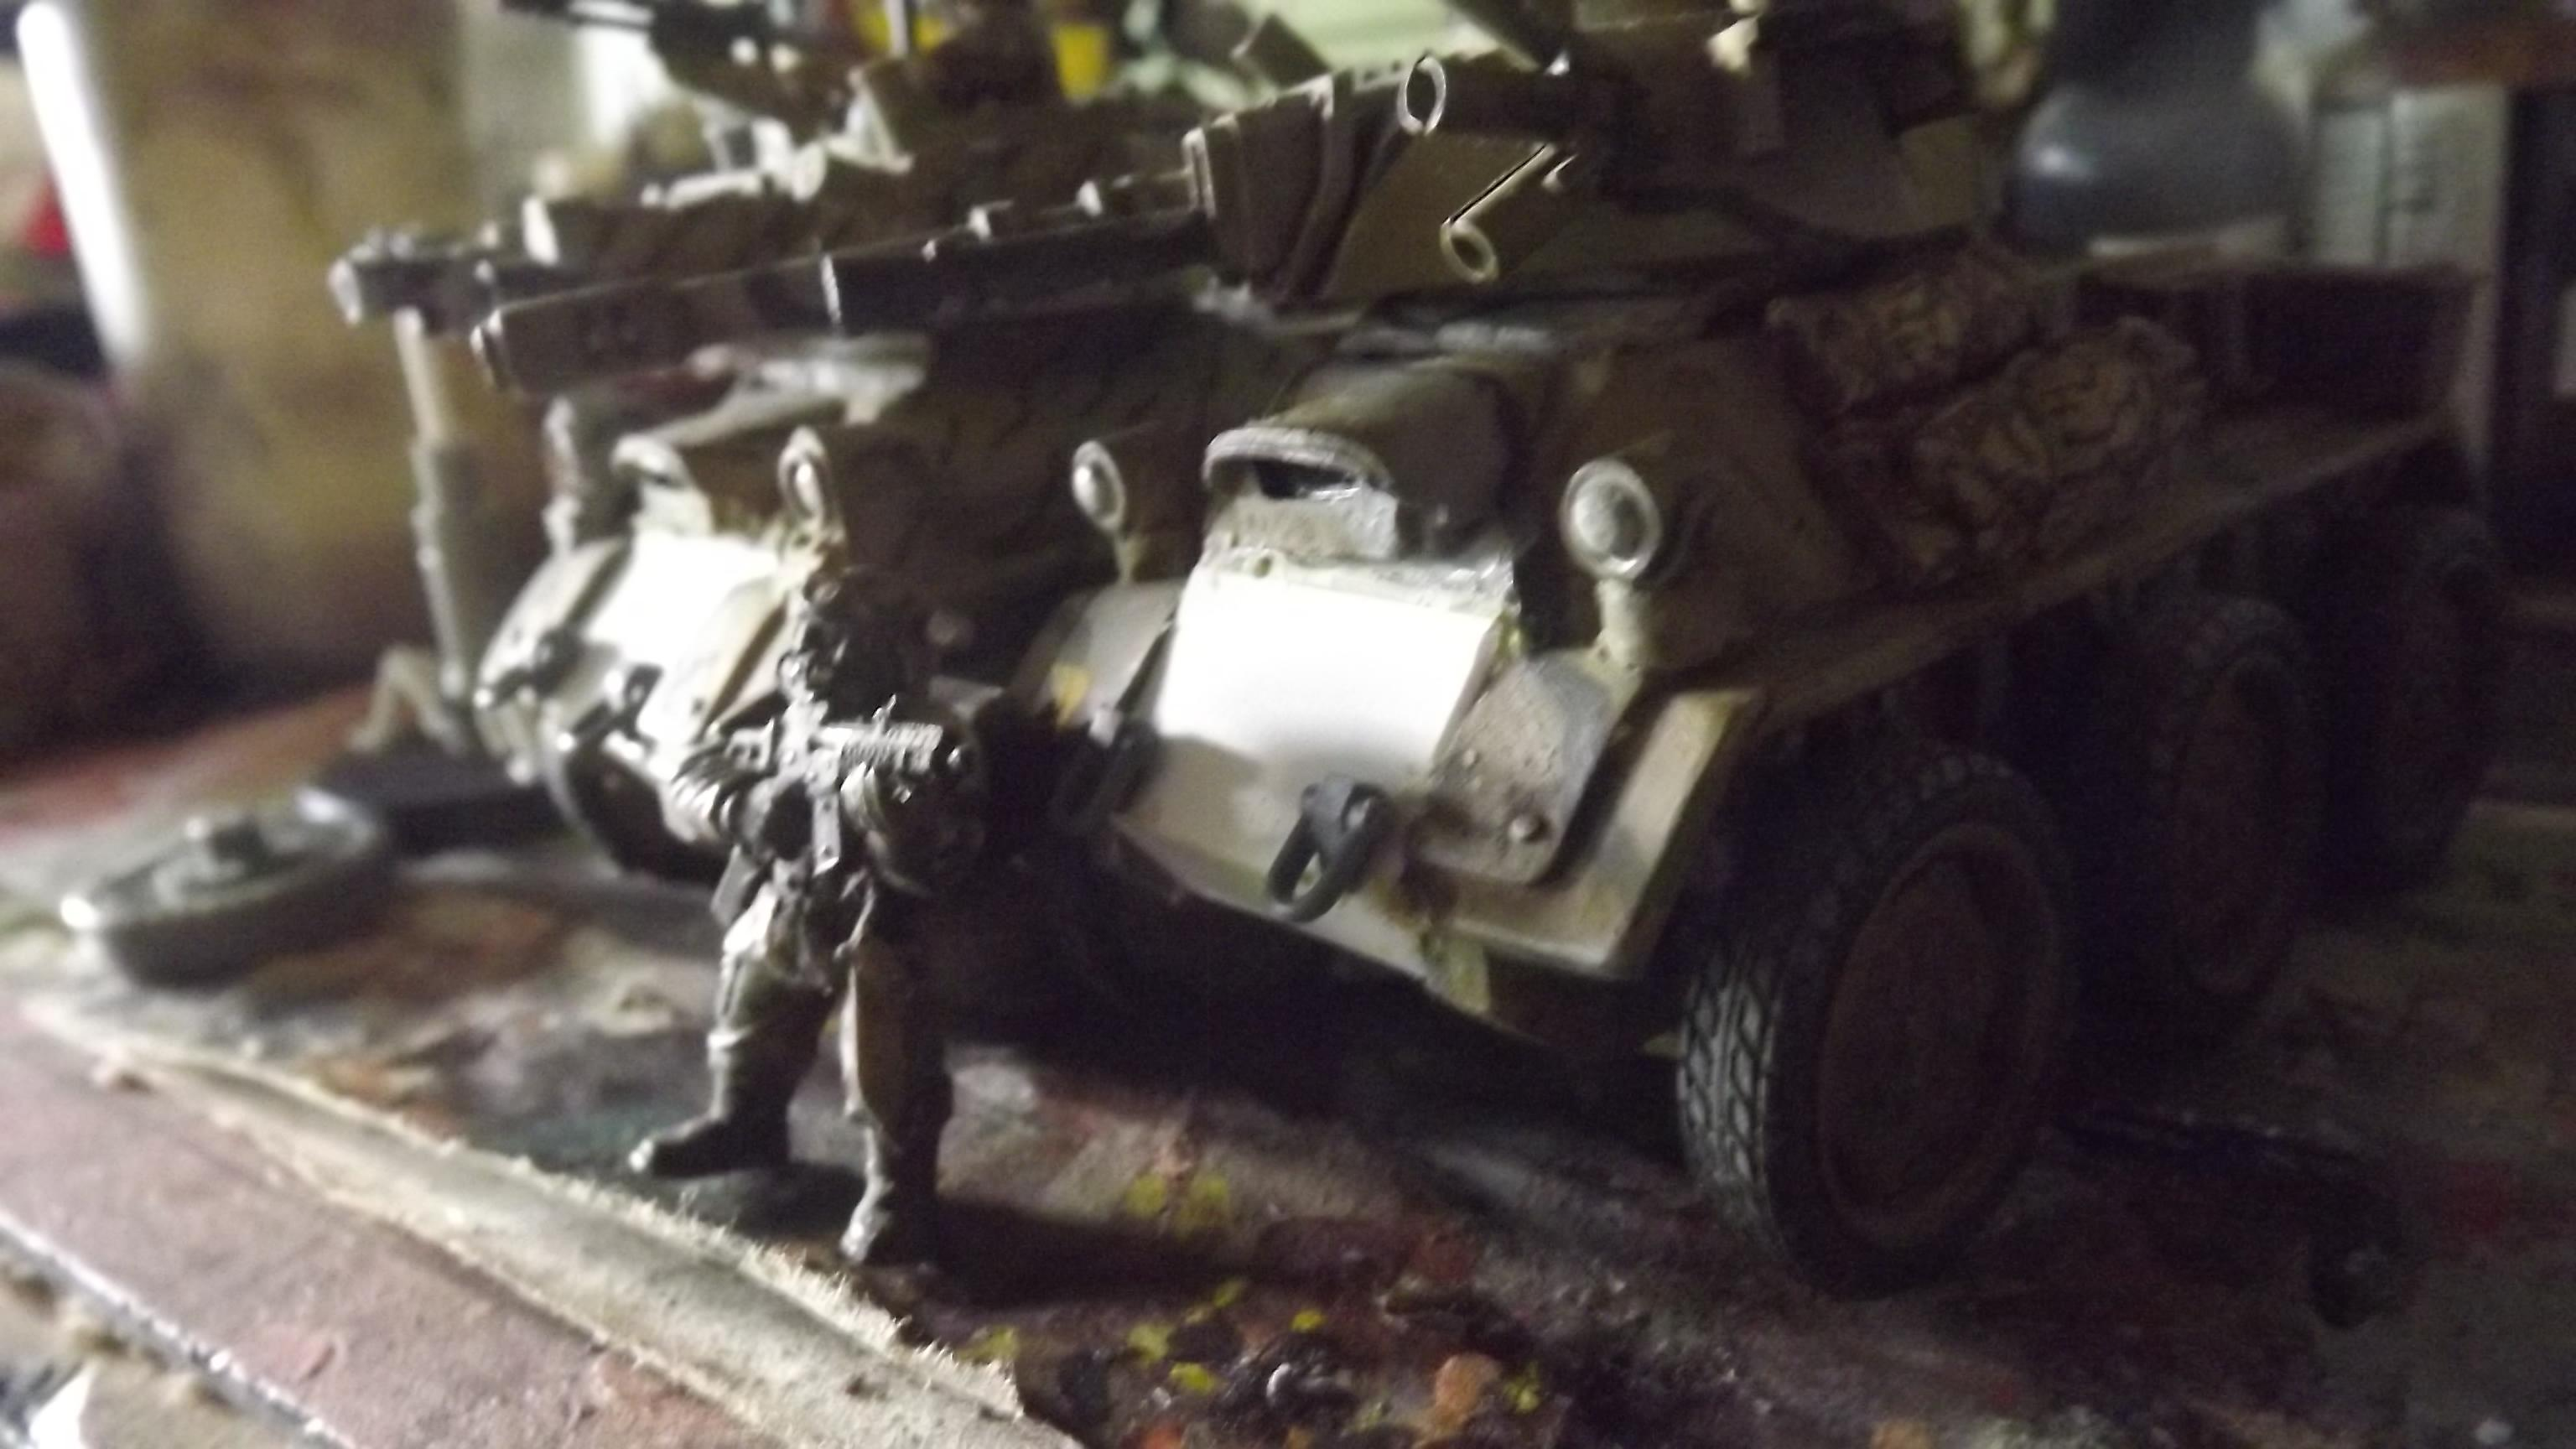 Armoured Car, Converion, Degu, Fast Attack, Light Vehicle, Proxy, Ramshackle Games, Recon, Scout Car, Sentinel, Work In Progress